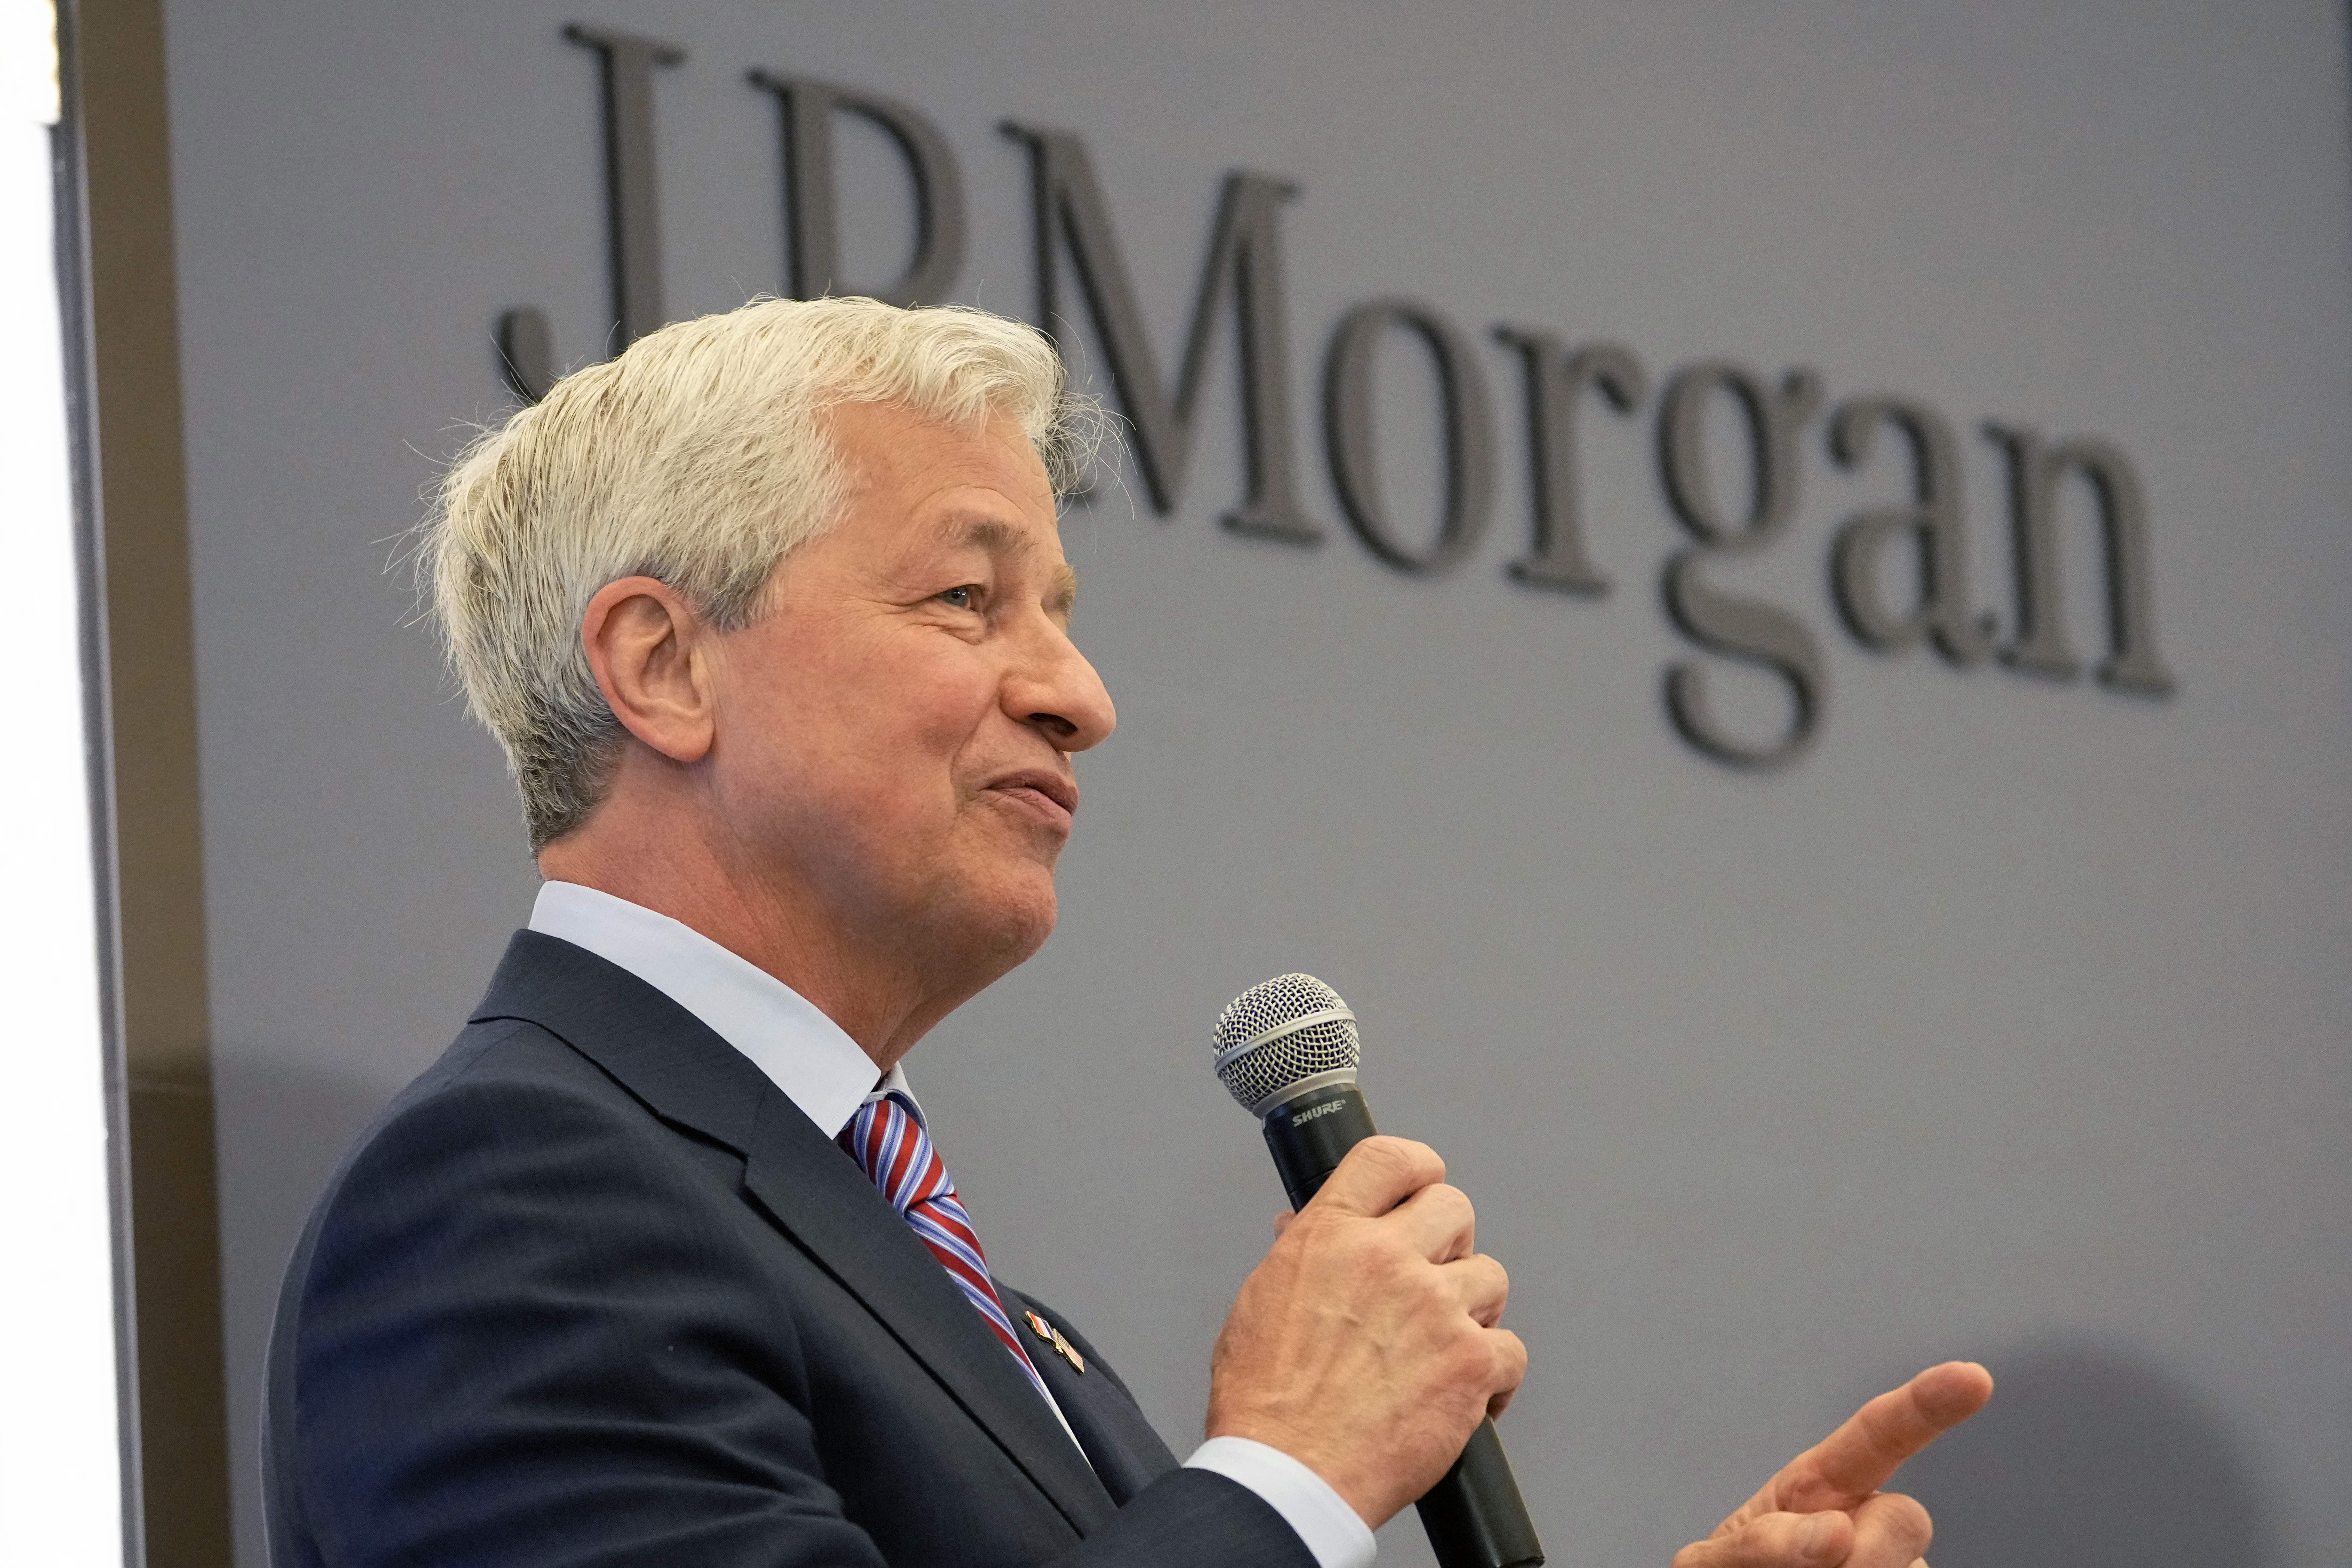 JPMorgan gives Jamie Dimon a special stock option bonus to keep him as CEO for several more years thumbnail